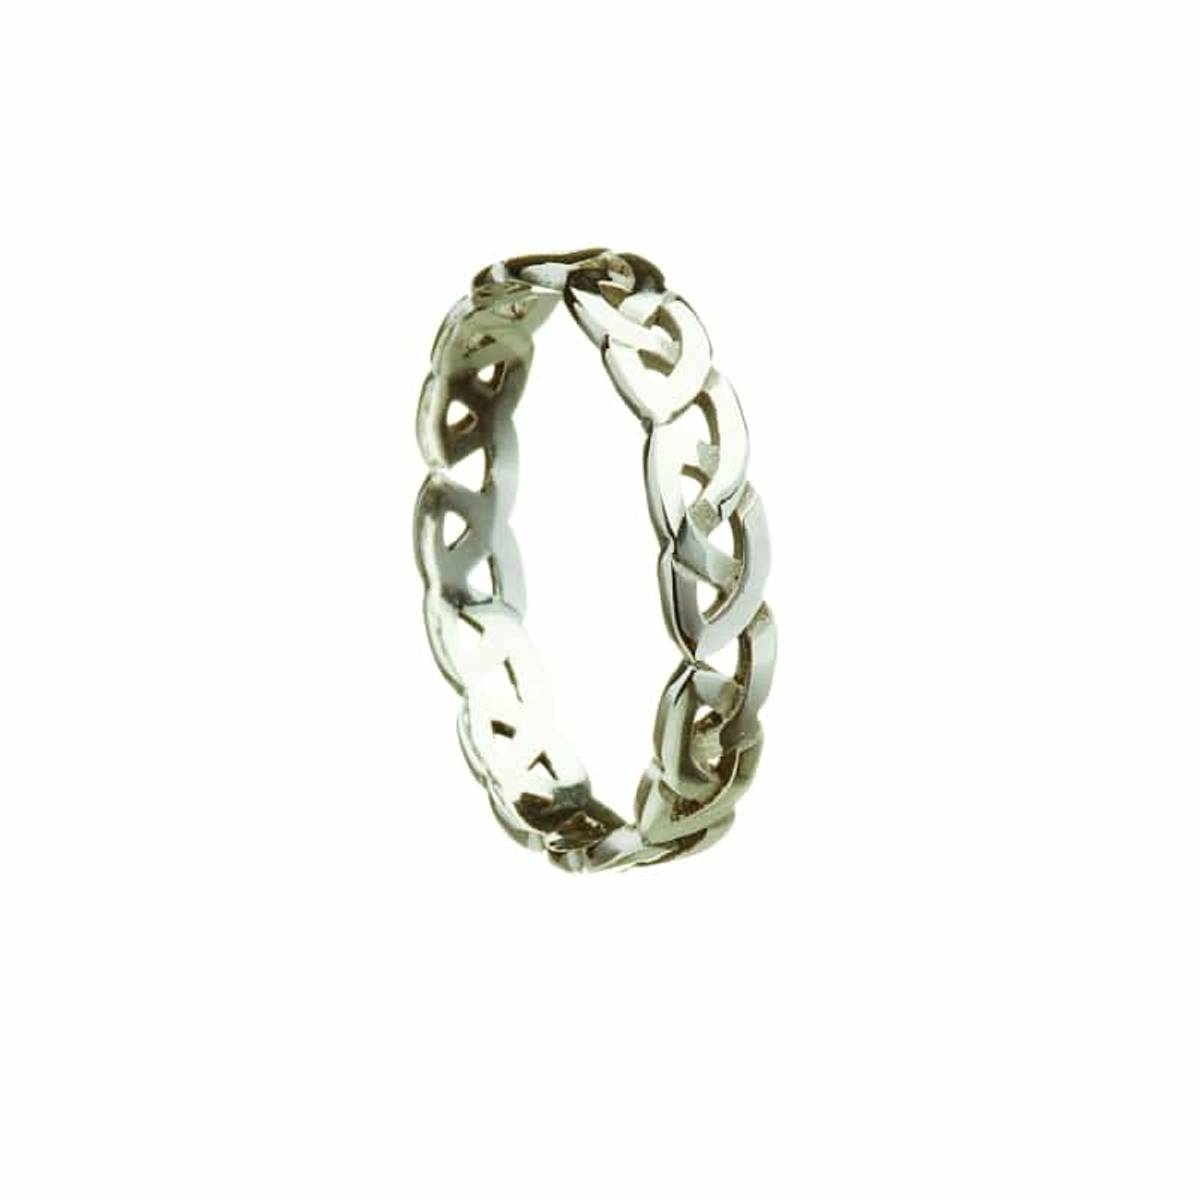 1o ct white gold ladies narrow woven Celtic knot band to P size